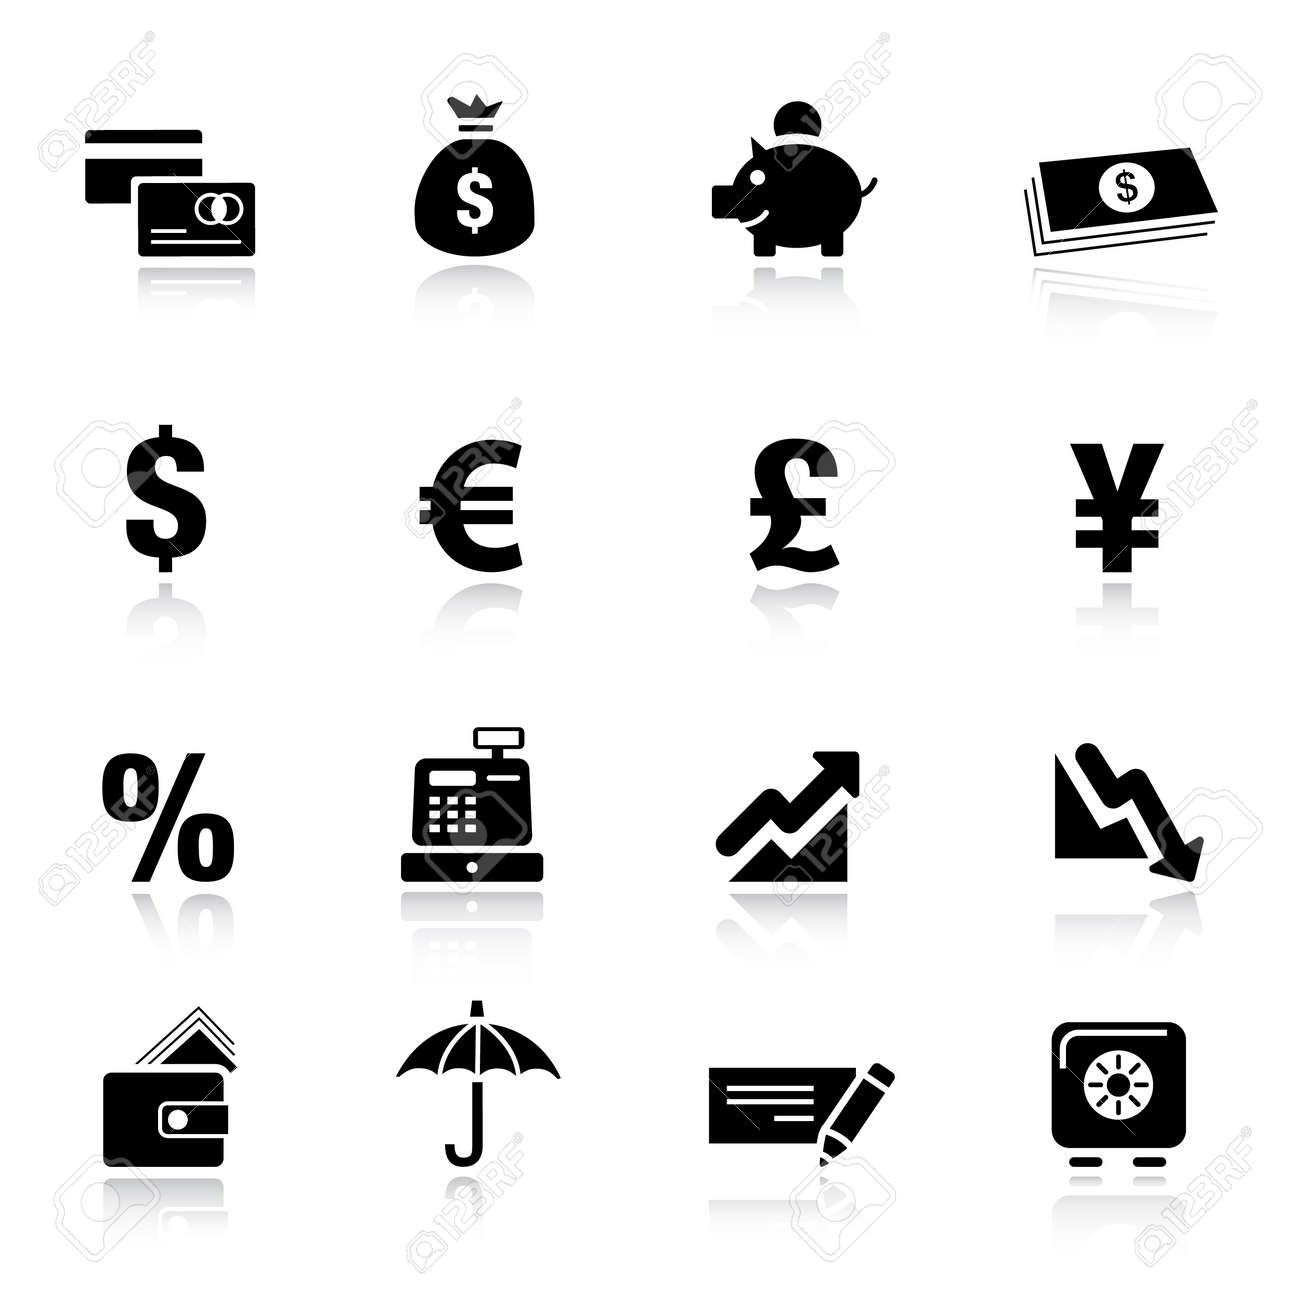 Basic -  Finance icons Stock Vector - 9701441